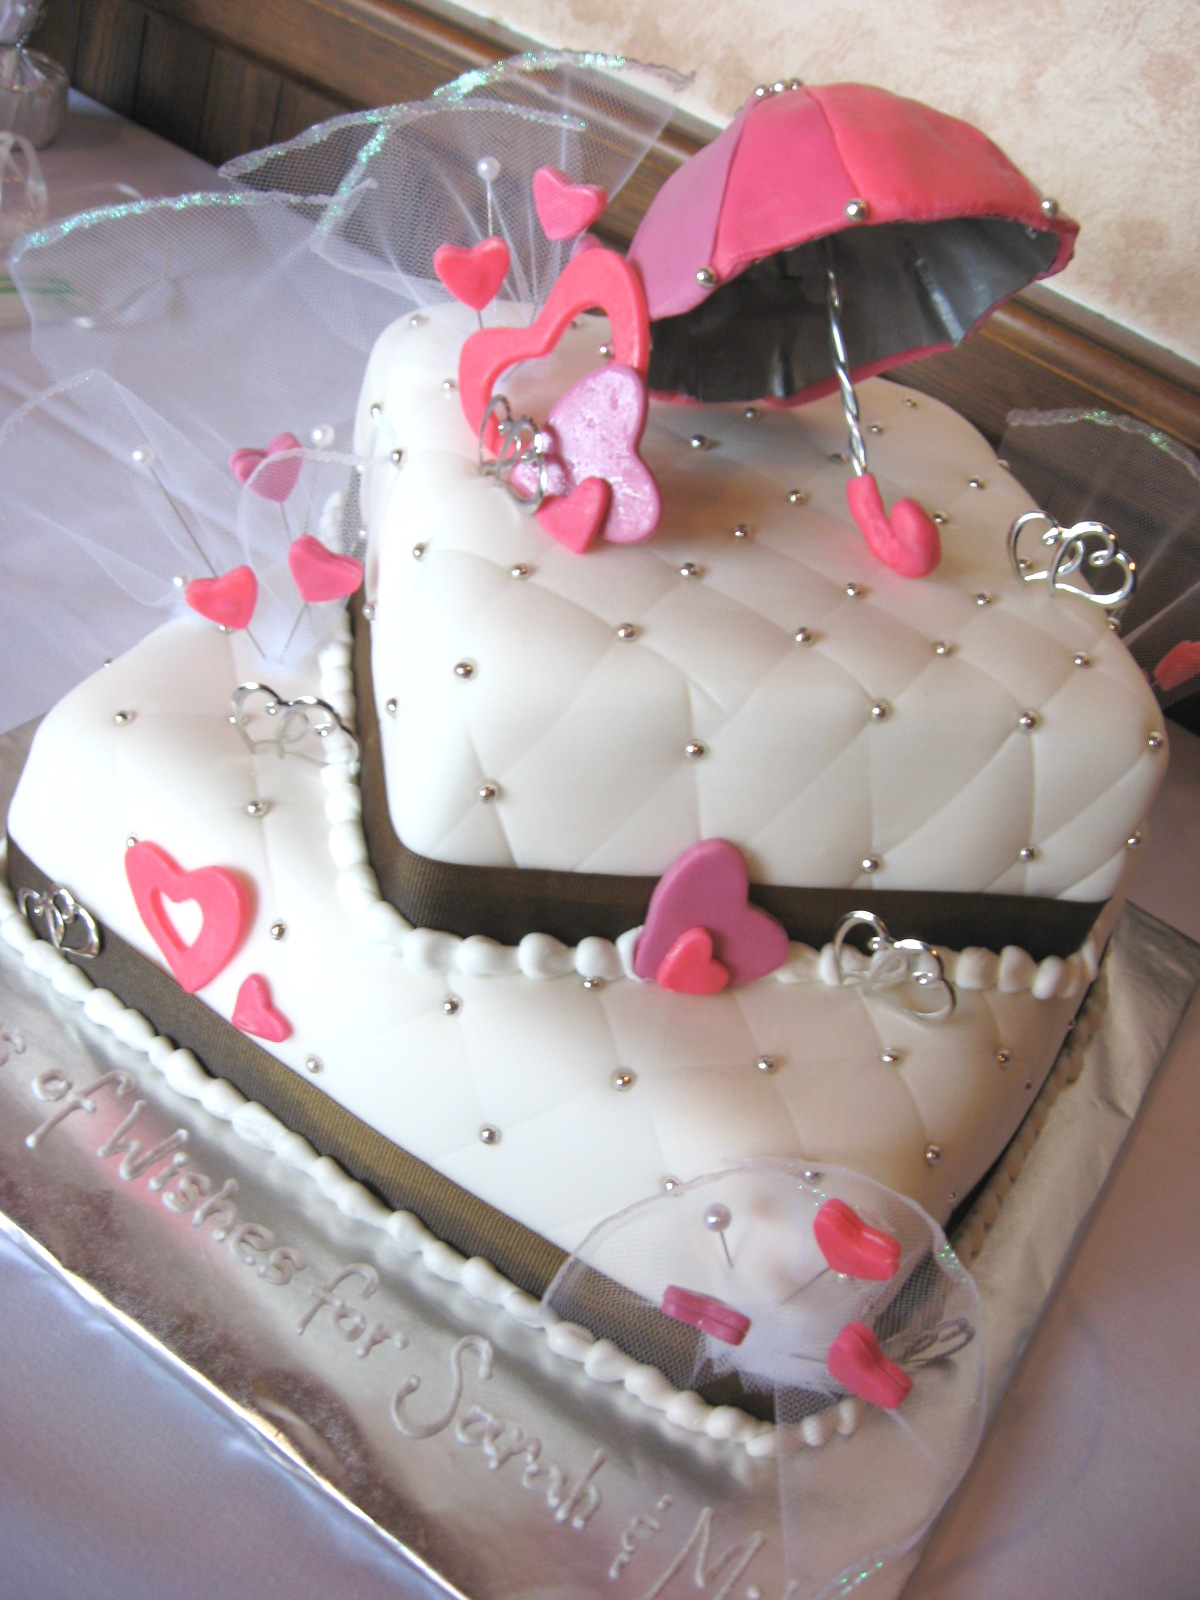 Cakeopolis: # 74 The Hearts Bridal Shower Cake